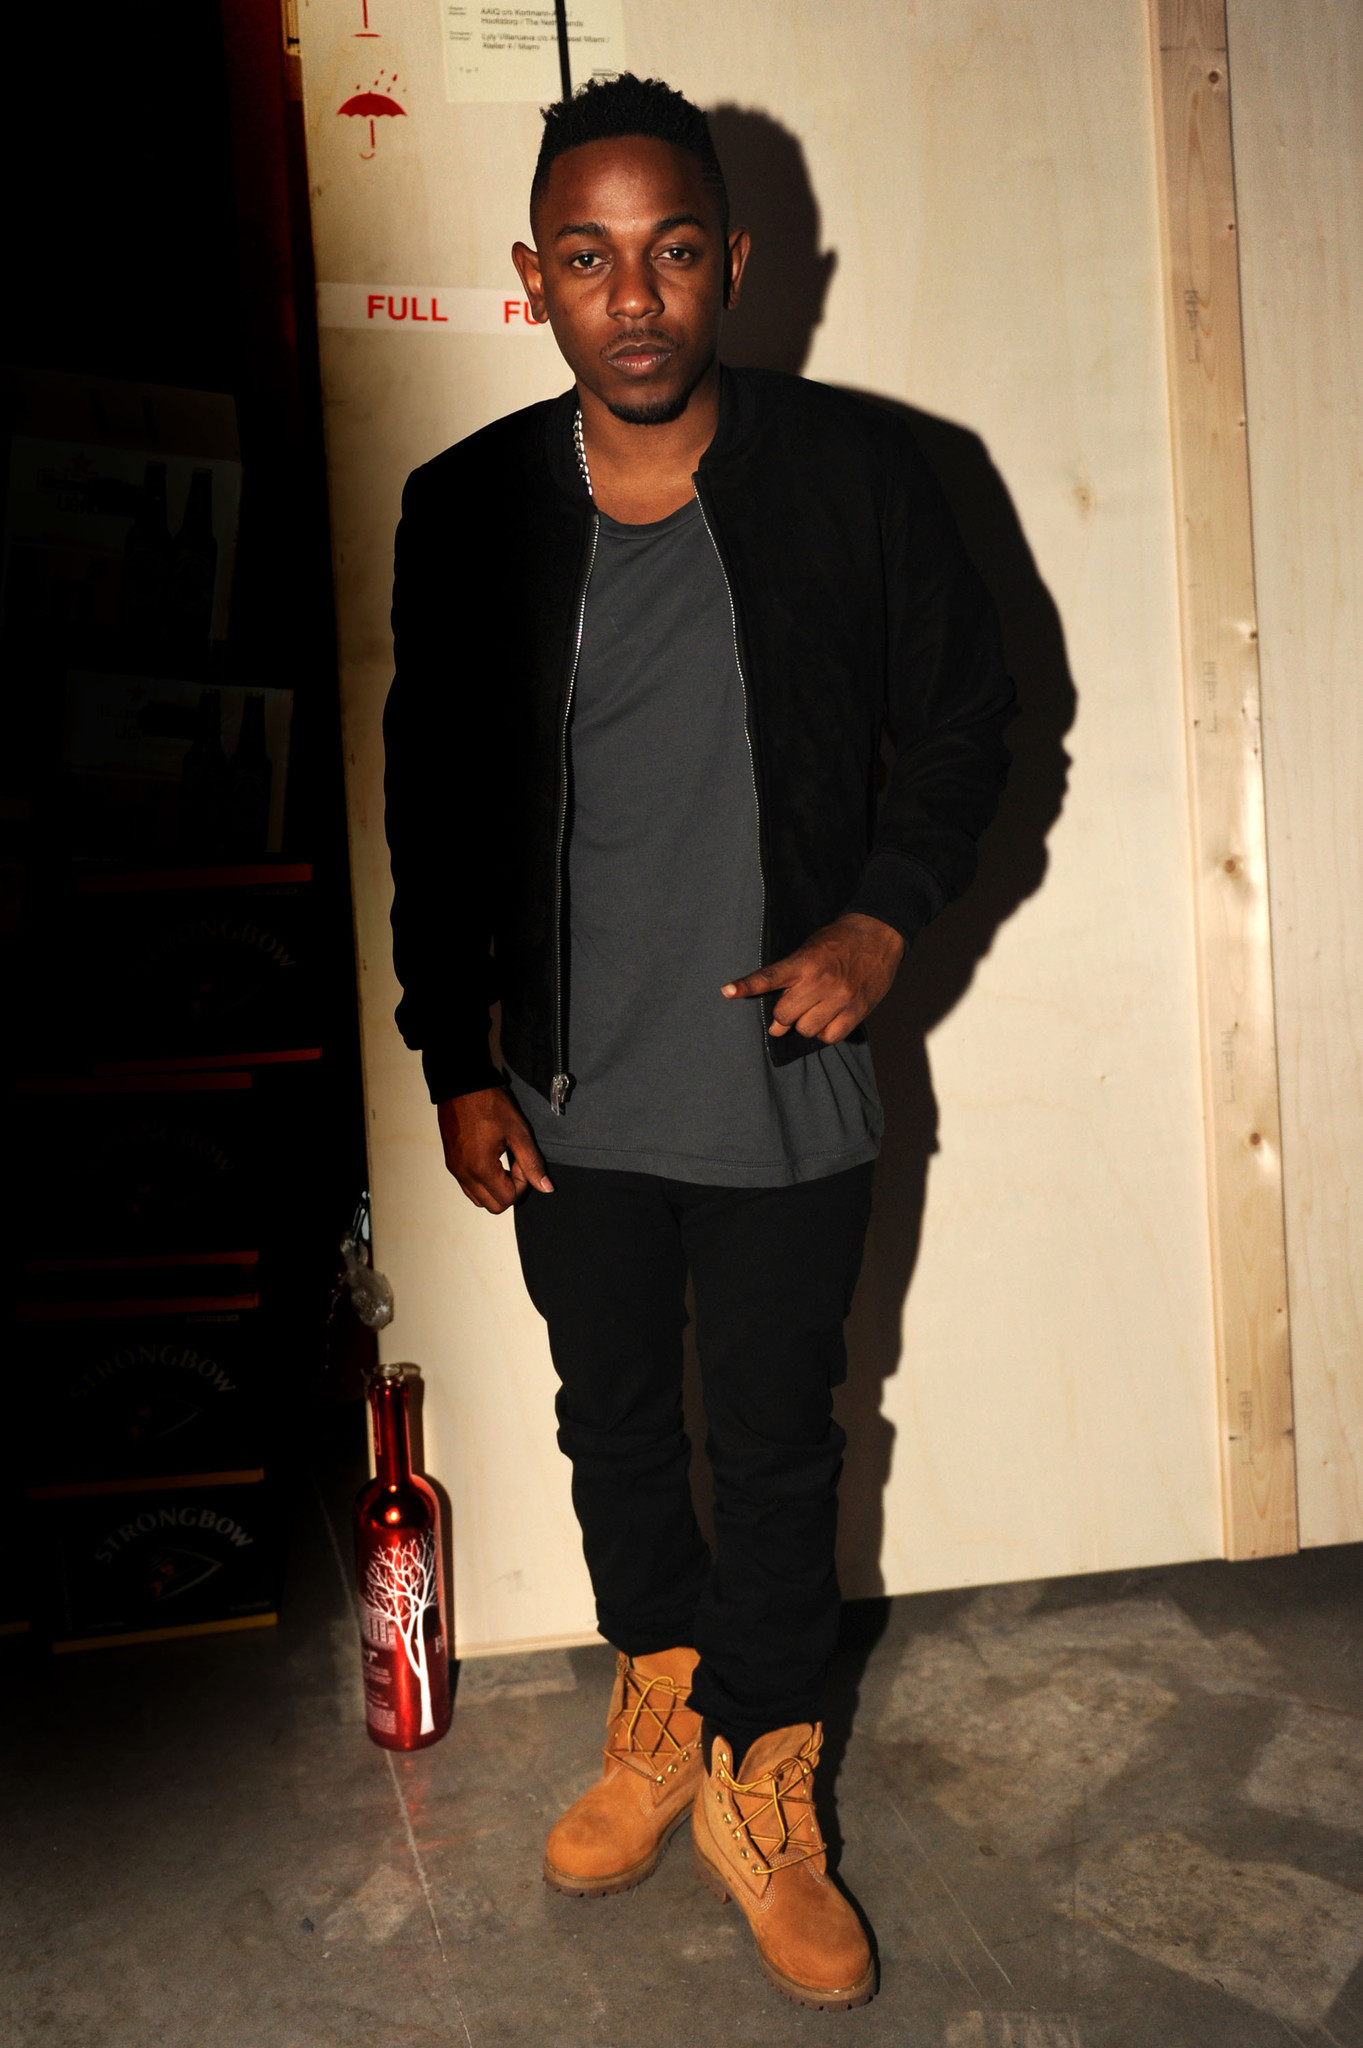 PHOTOS: Artists, celebs at Art Basel - Kendrick Lamar